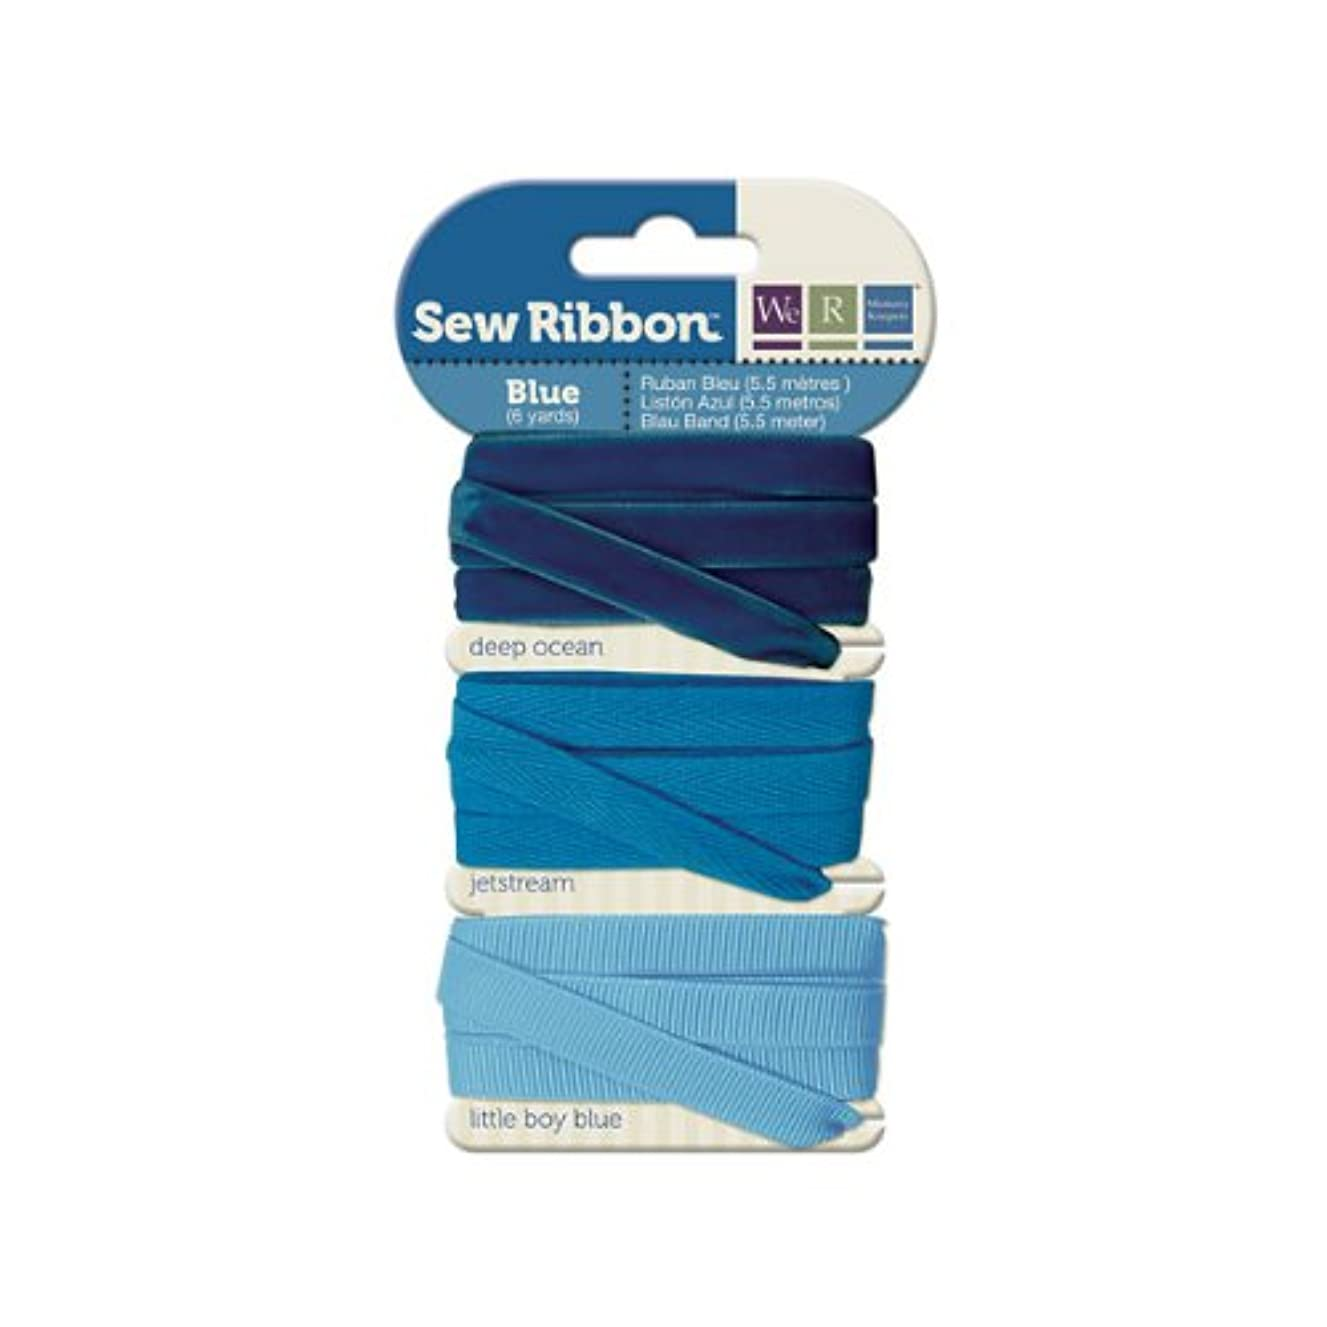 We R Memory Keepers Sew Ribbon, Blue